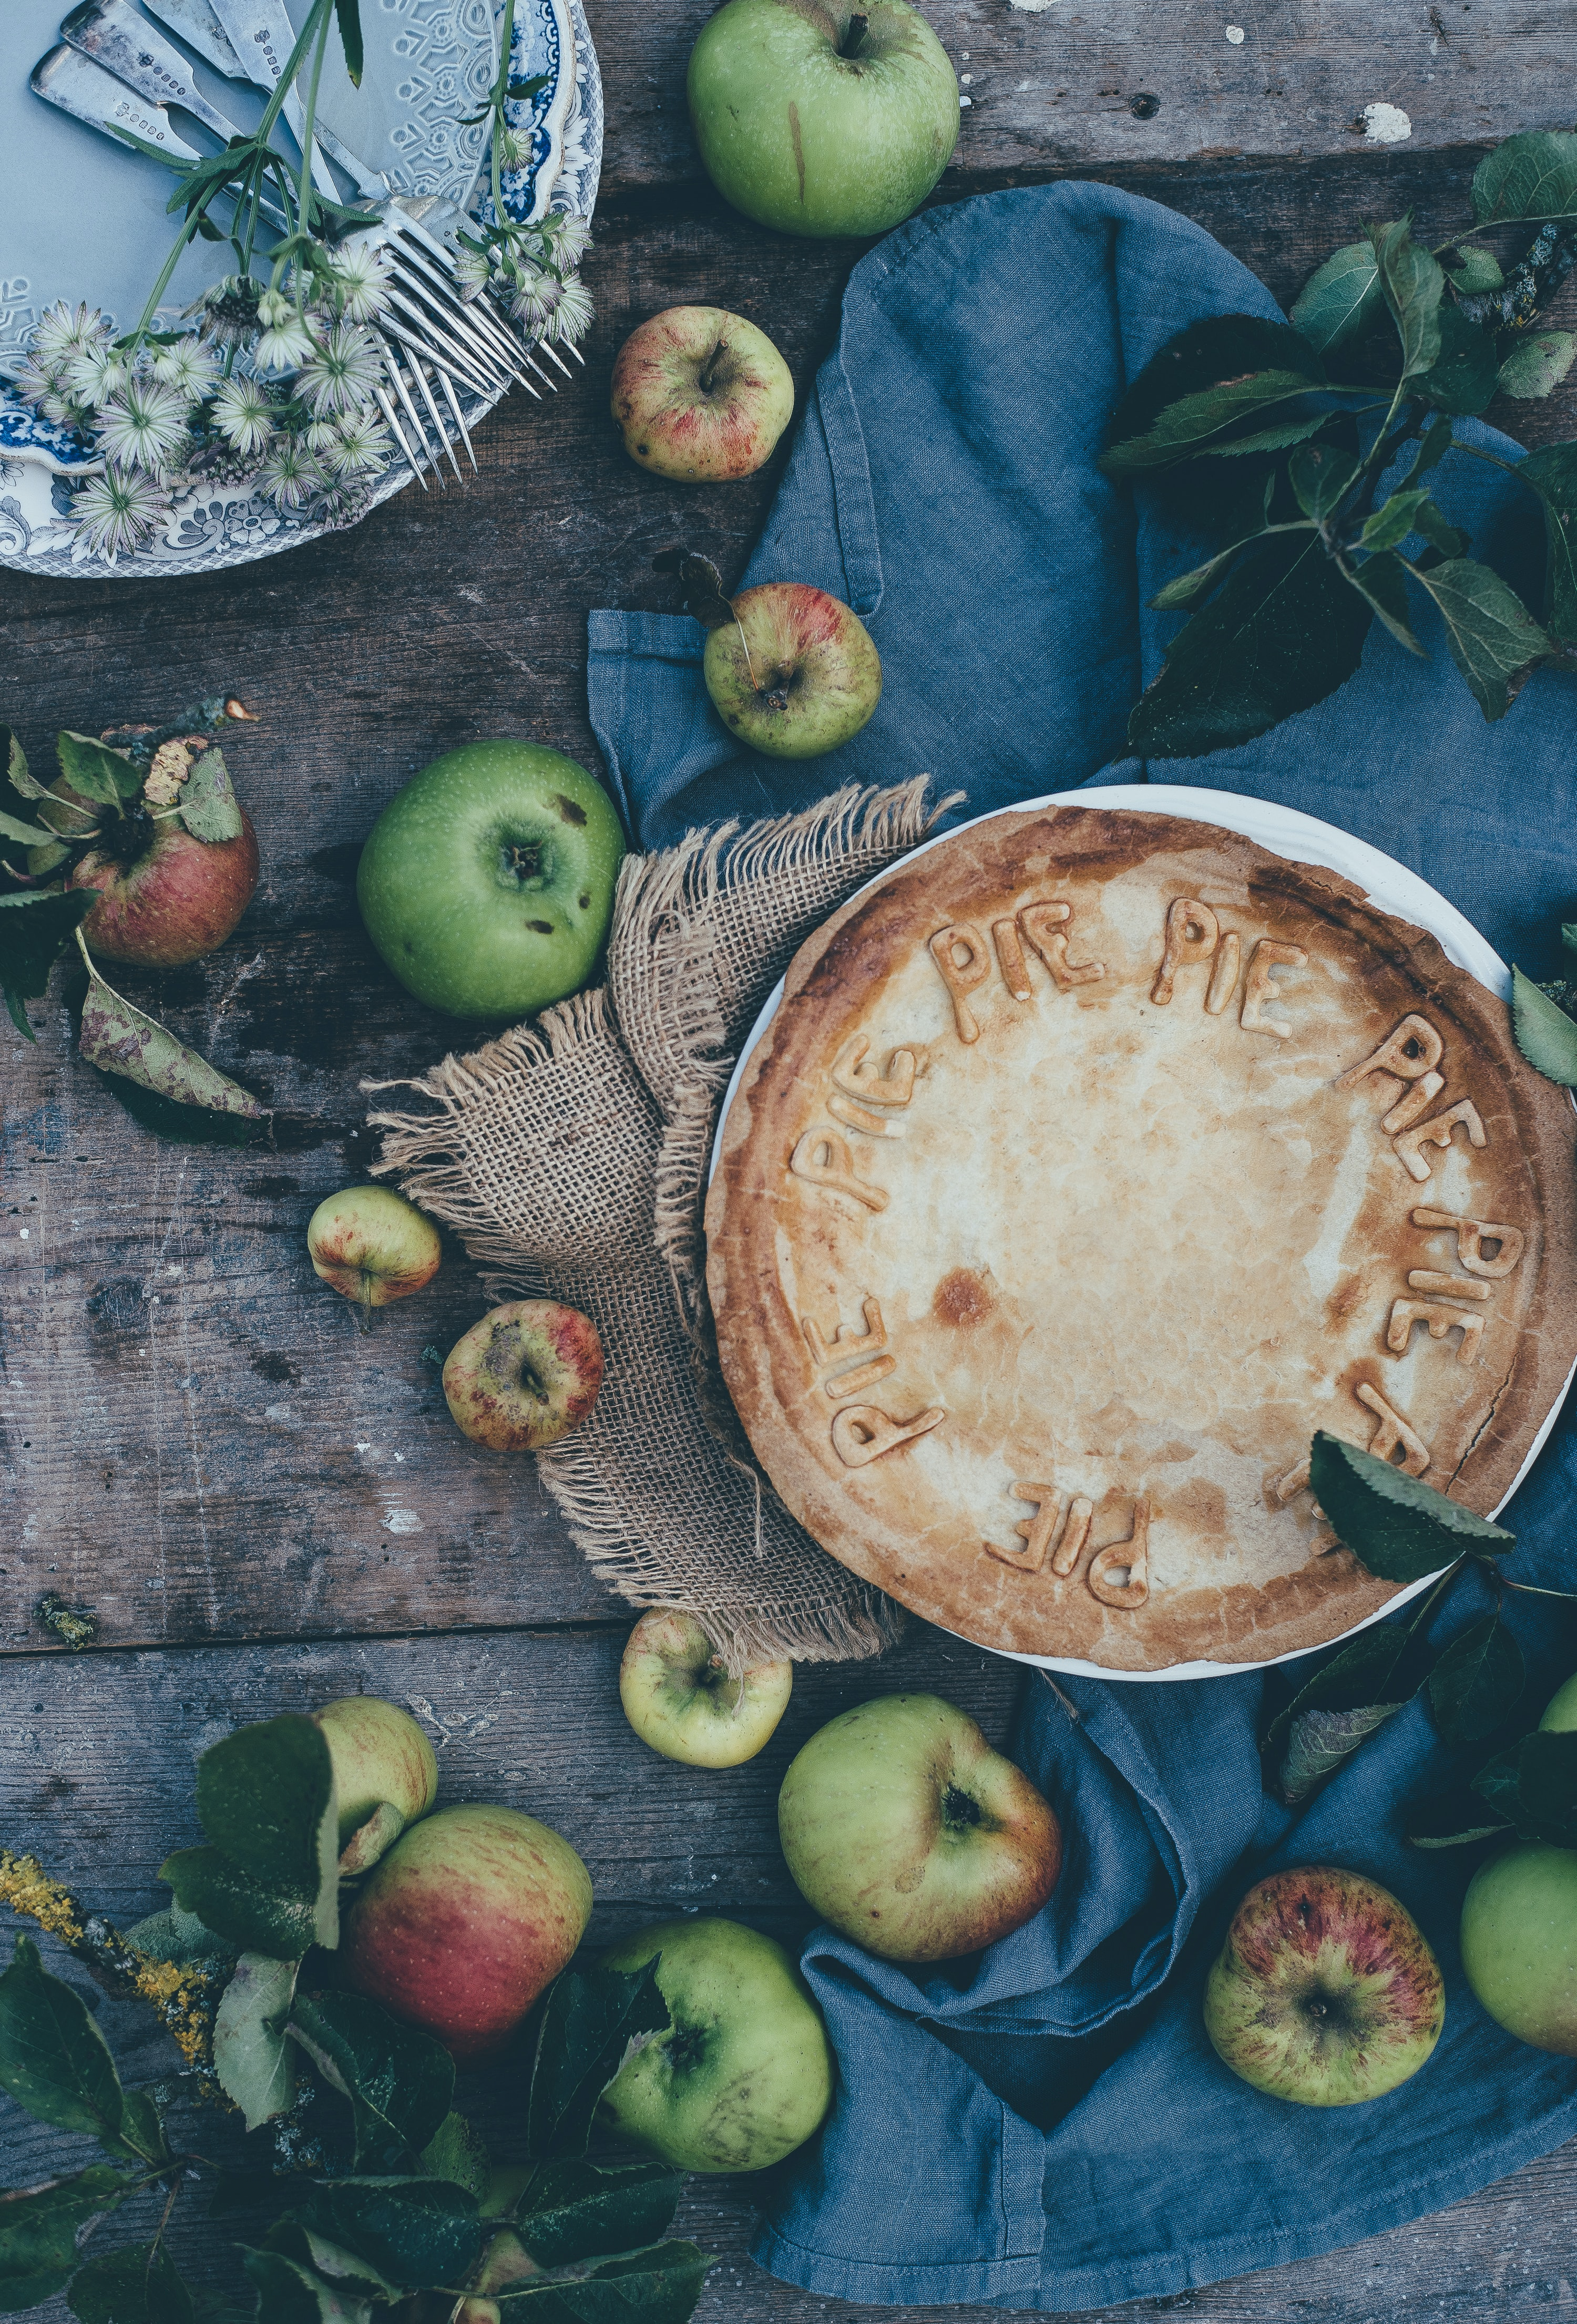 Top view of a perfectly baked apple pie dessert with green and red apples surrounding it on a wooden table.